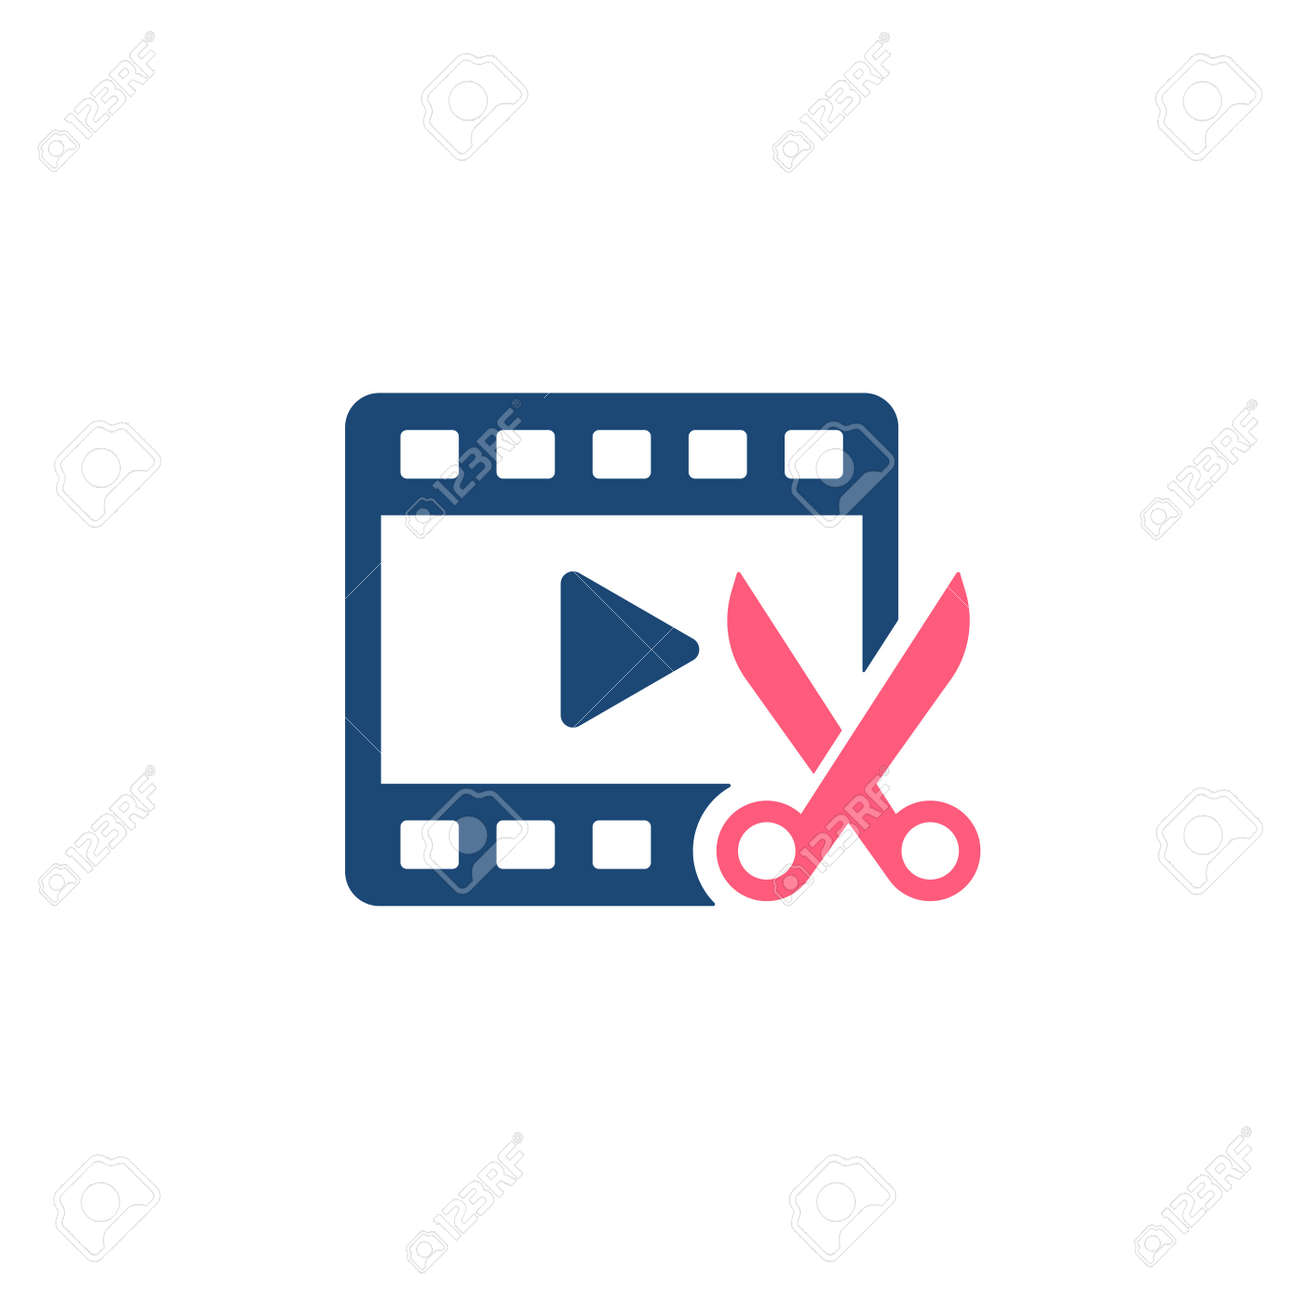 Video Editing glyph style icon. Film roll with scissors cut on it. Premium vector icon - 165730320